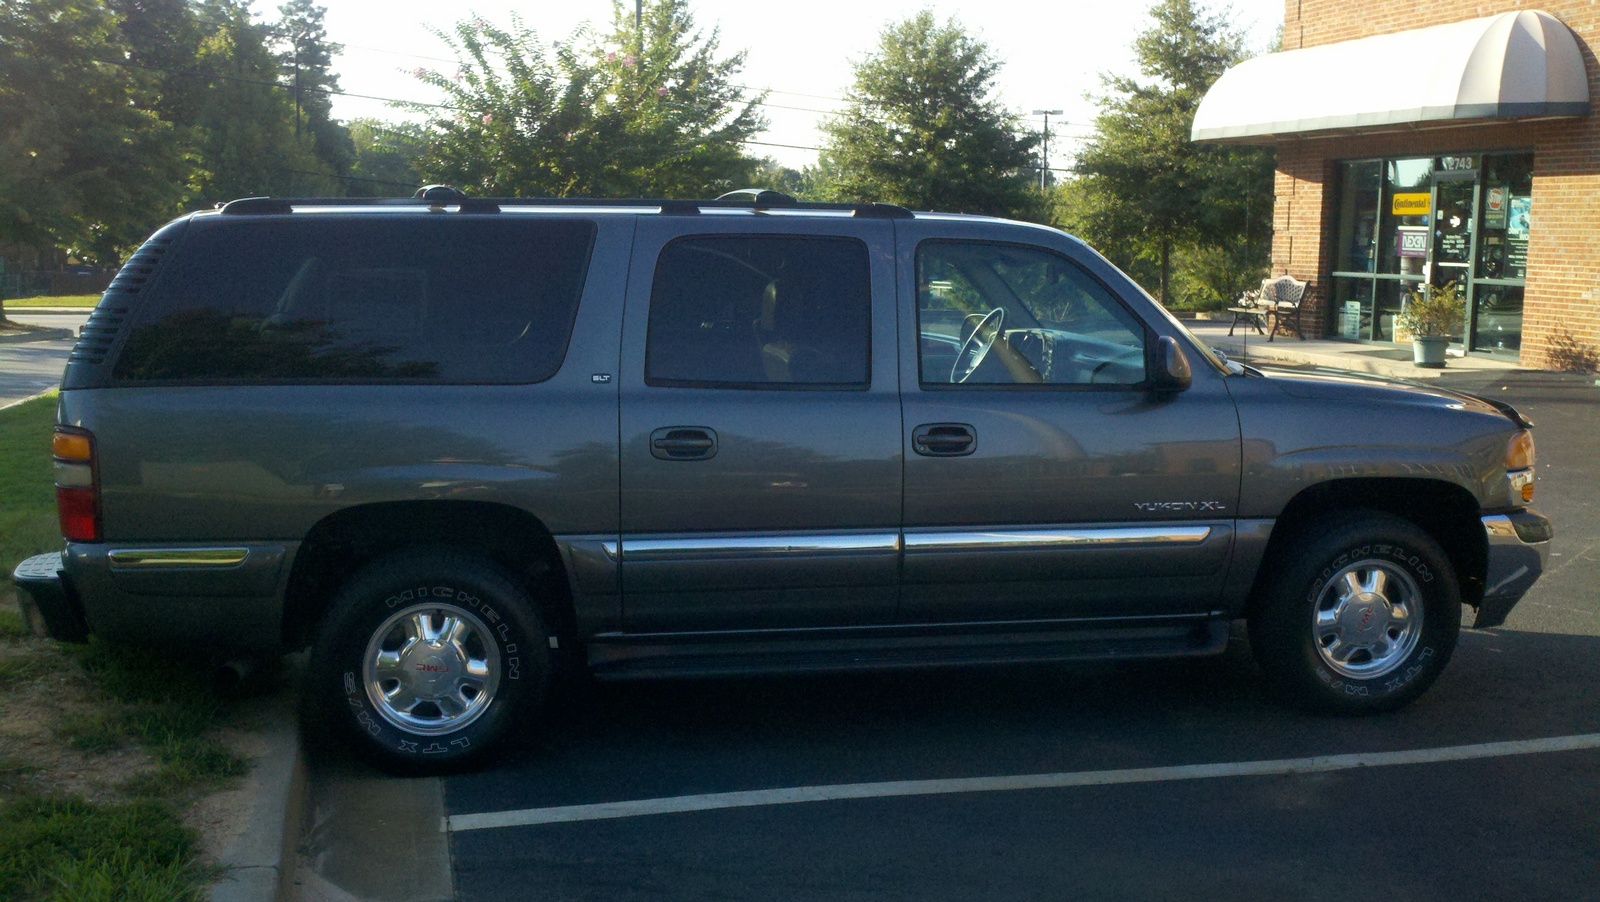 Picture of 2001 gmc yukon xl 4 dr 1500 slt suv exterior